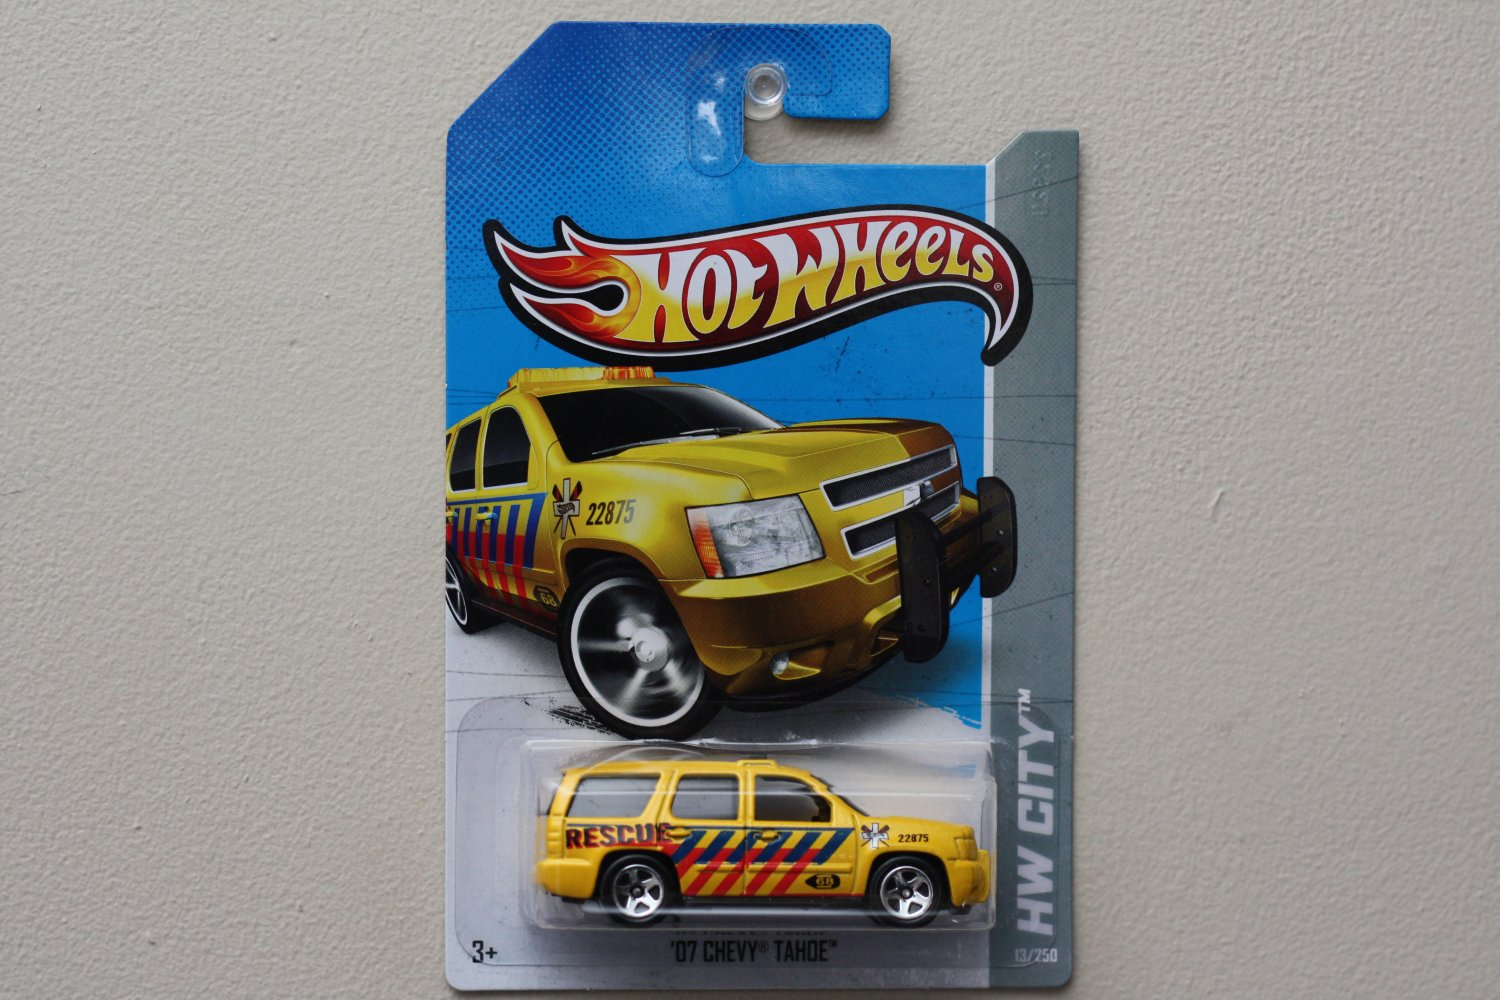 07 Chevy Tahoe Hot Wheels Wiki | Autos Post